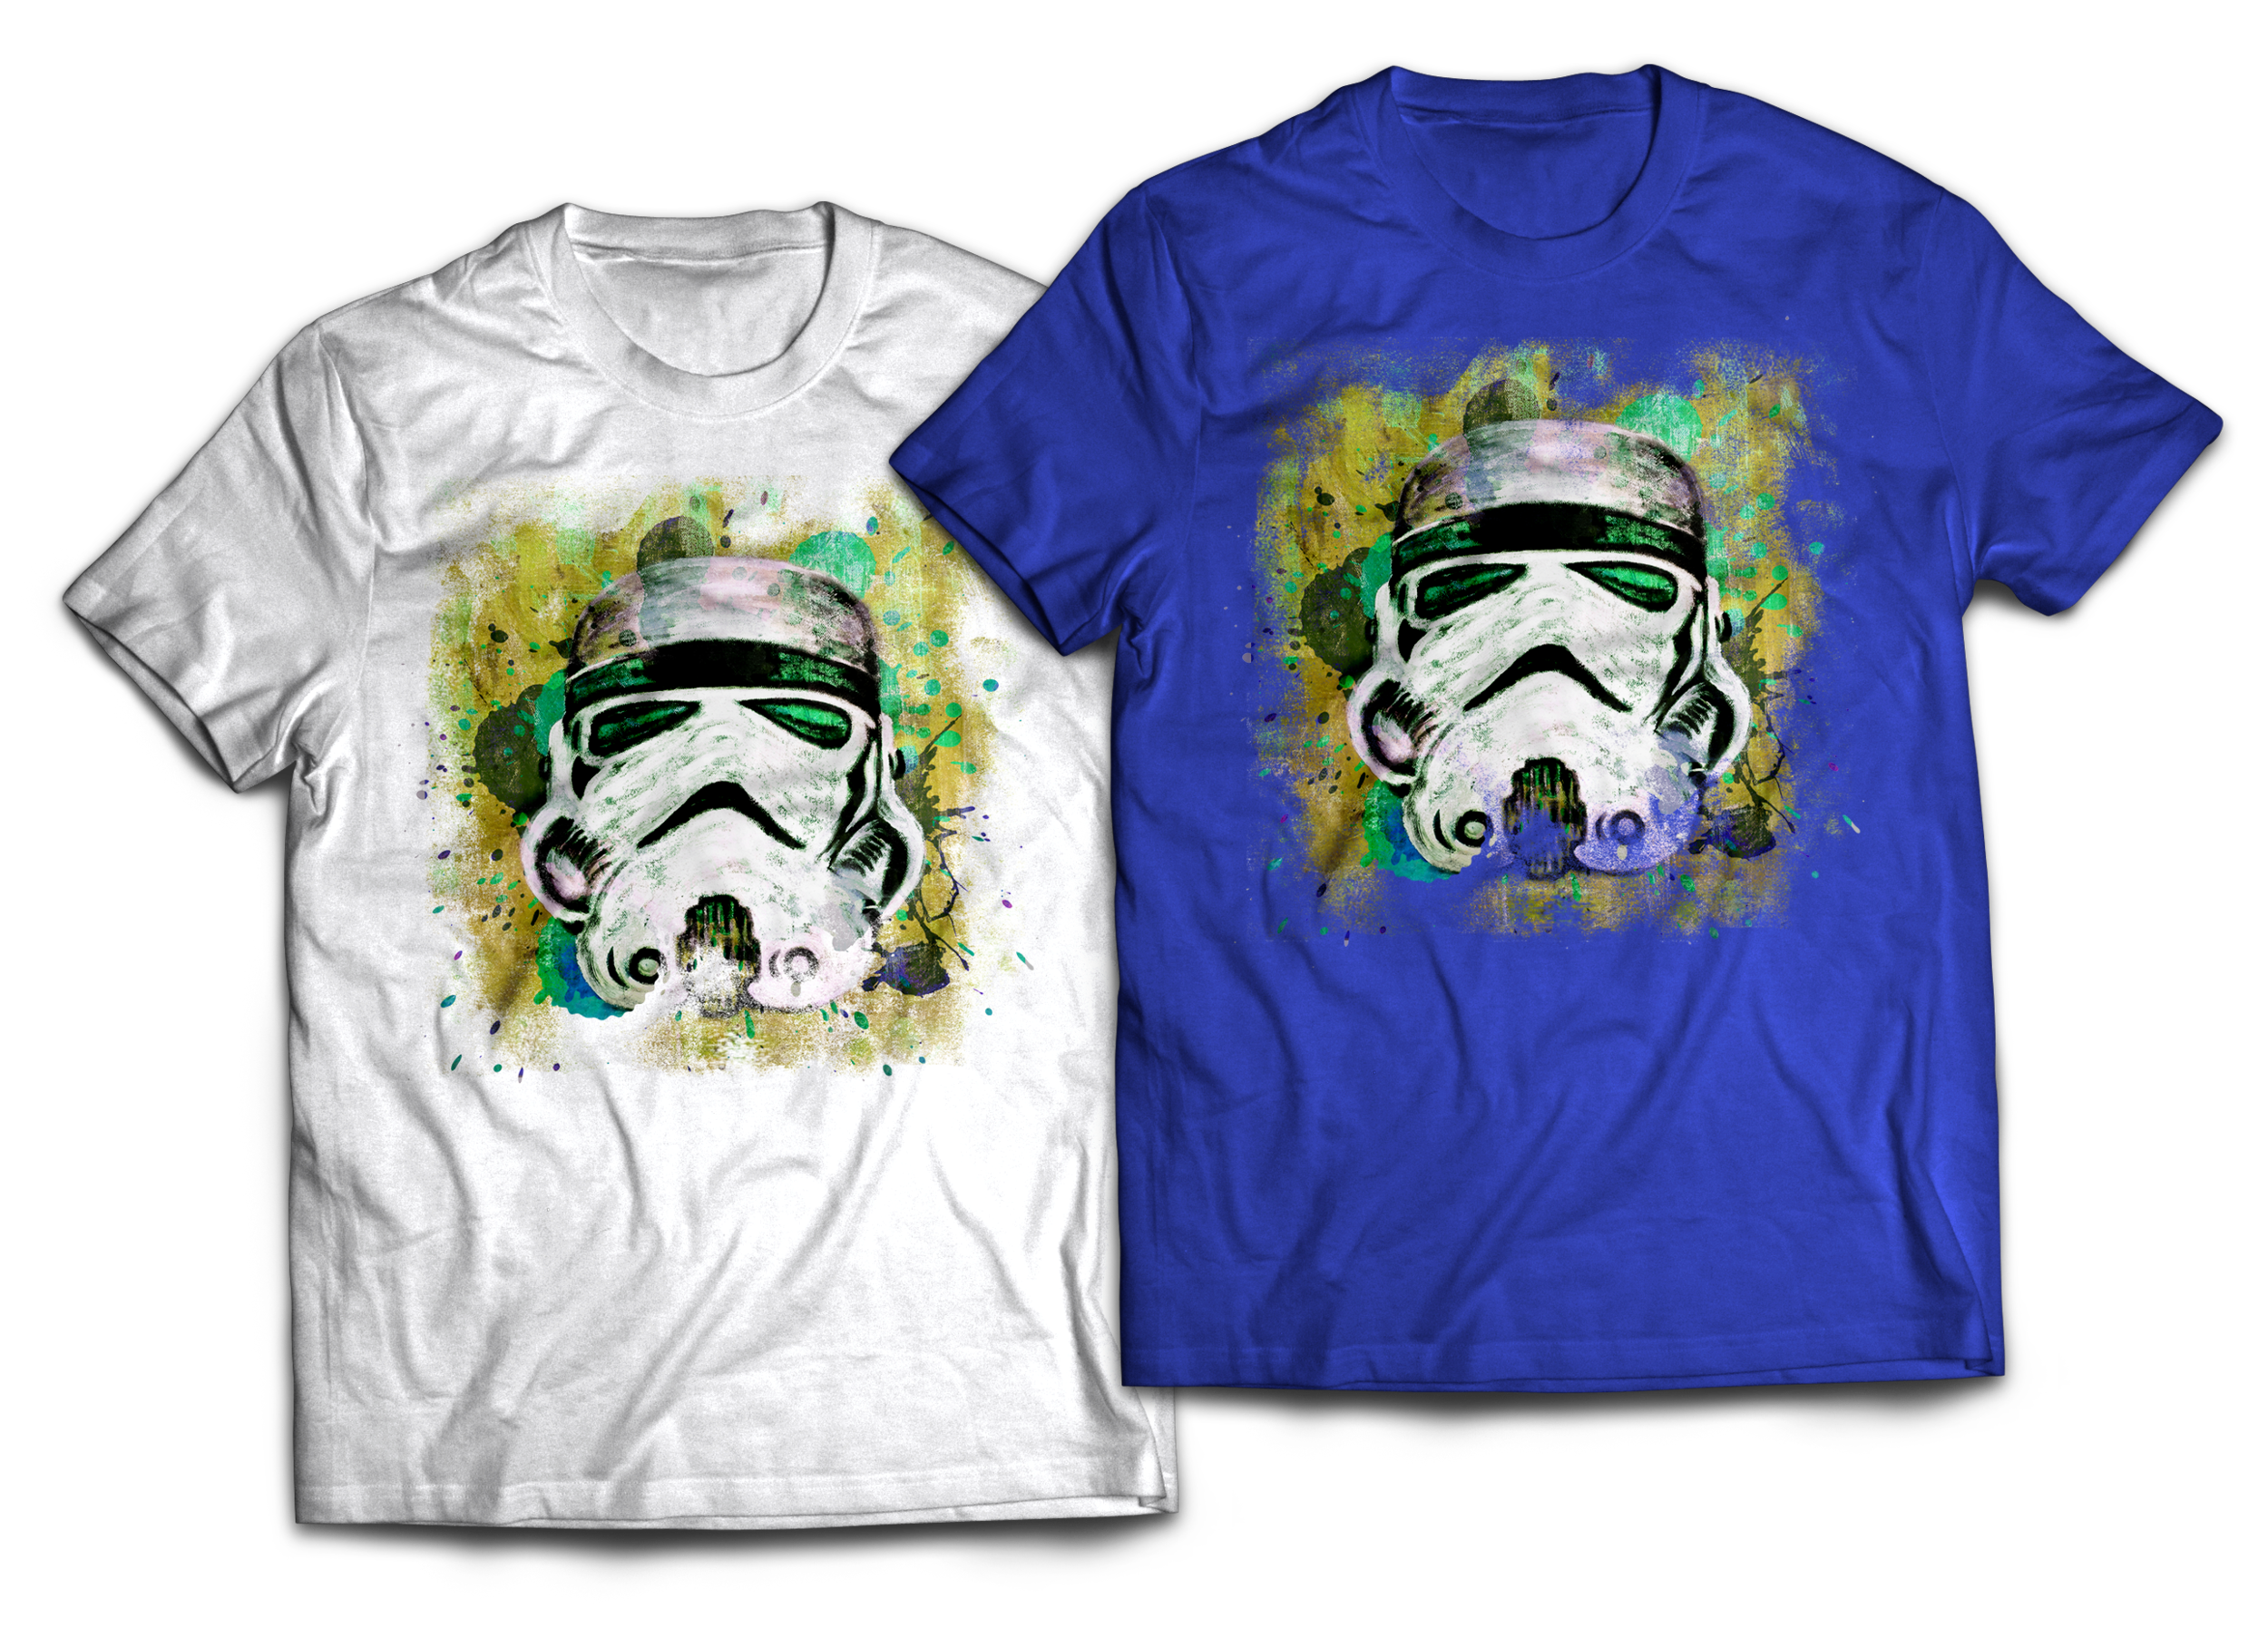 Stormtrooper Abstract painting T-shirt Design Jlane Design Teepublic